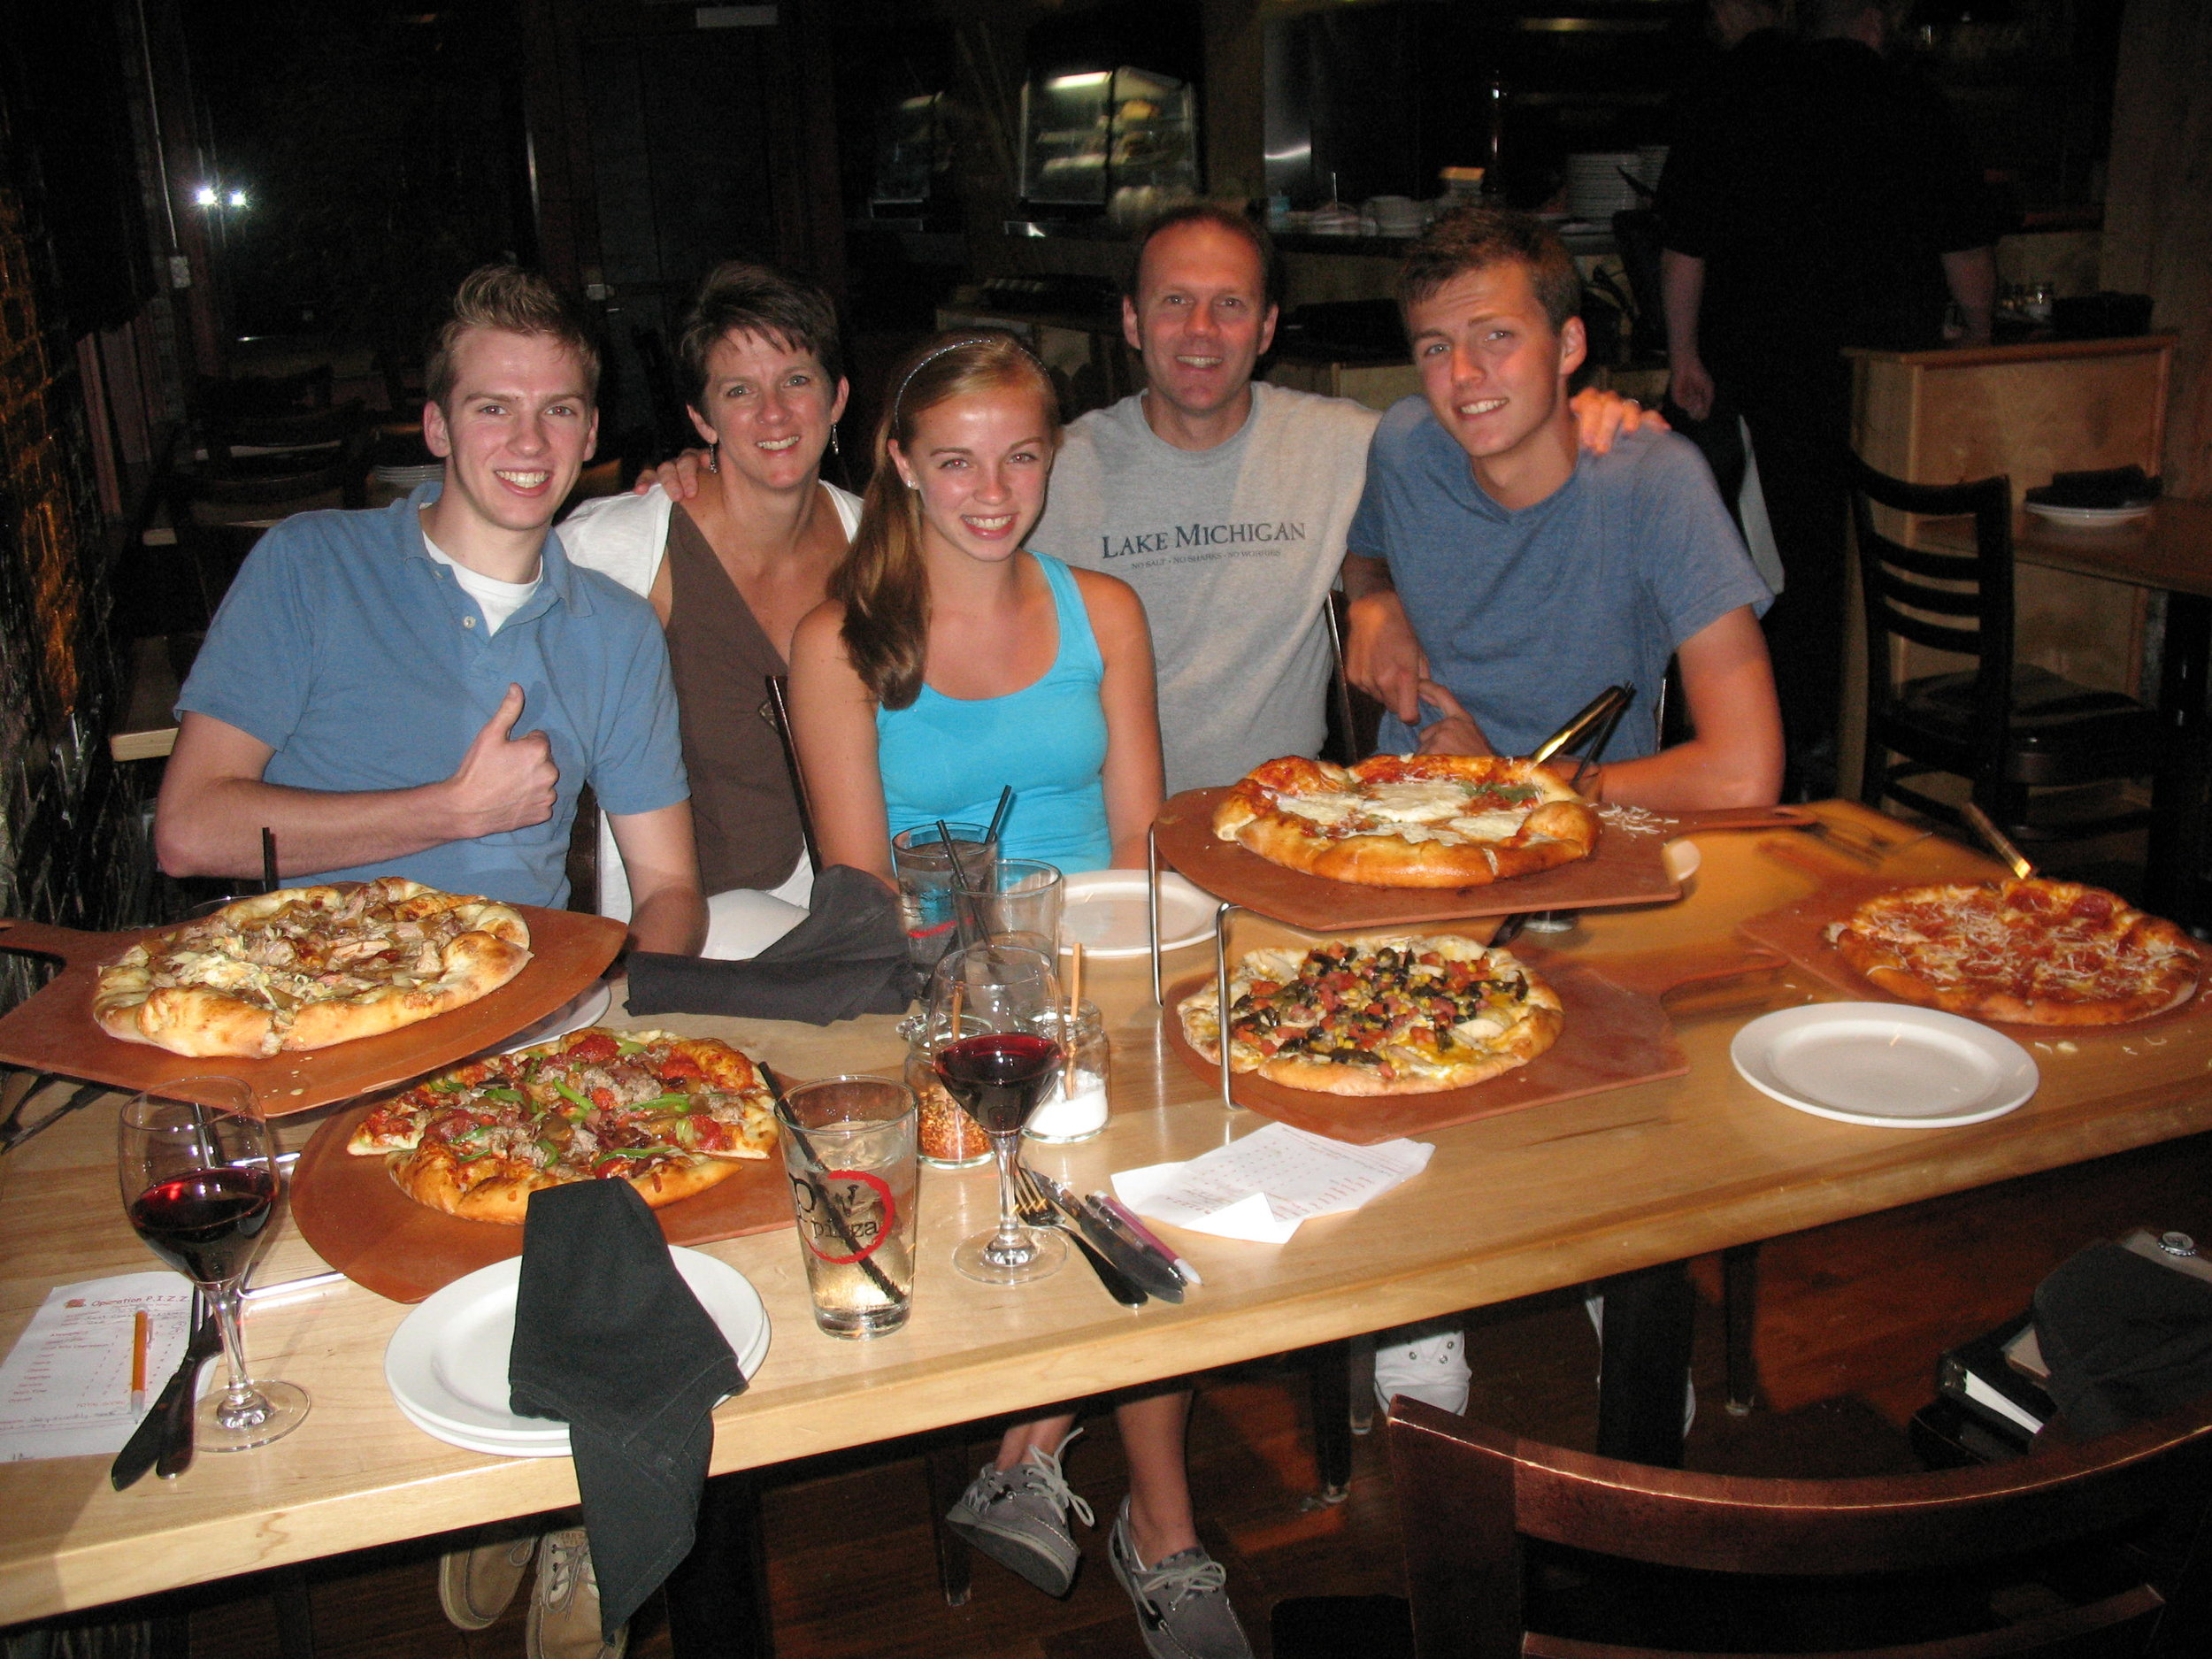 PIZZA SURVEY  Wanna have some extra fun? Start a pizza survey with your friends or family - or any kind of food you eat regularly. We've been doing a 10-point survey for over a decade and it always creates some great conversation around one of our favorite meals.    Download Our Survey